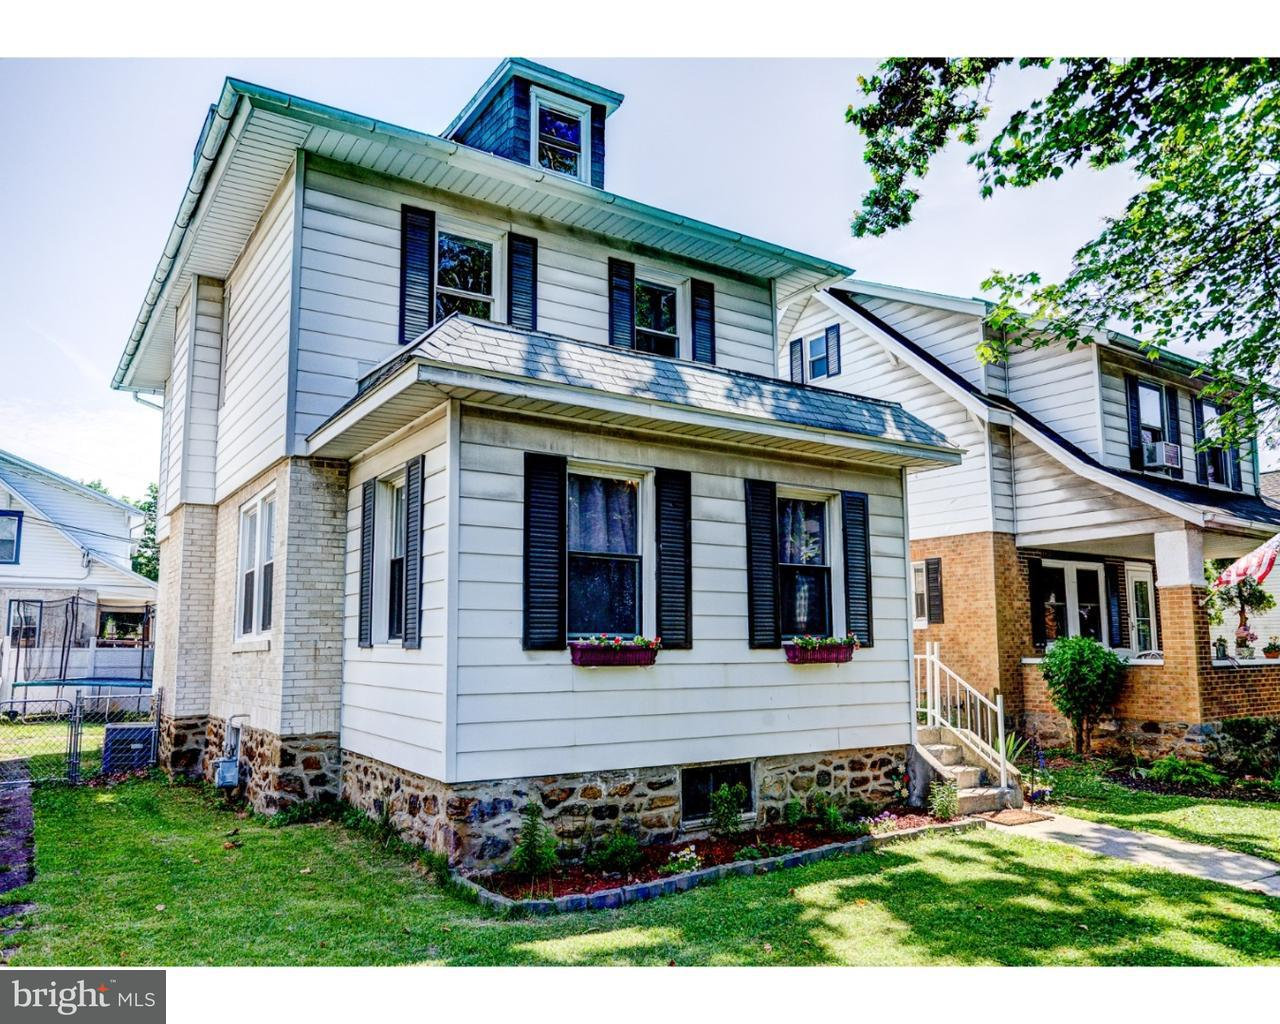 3 PARK ST, READING - Listed at $150,000, READING